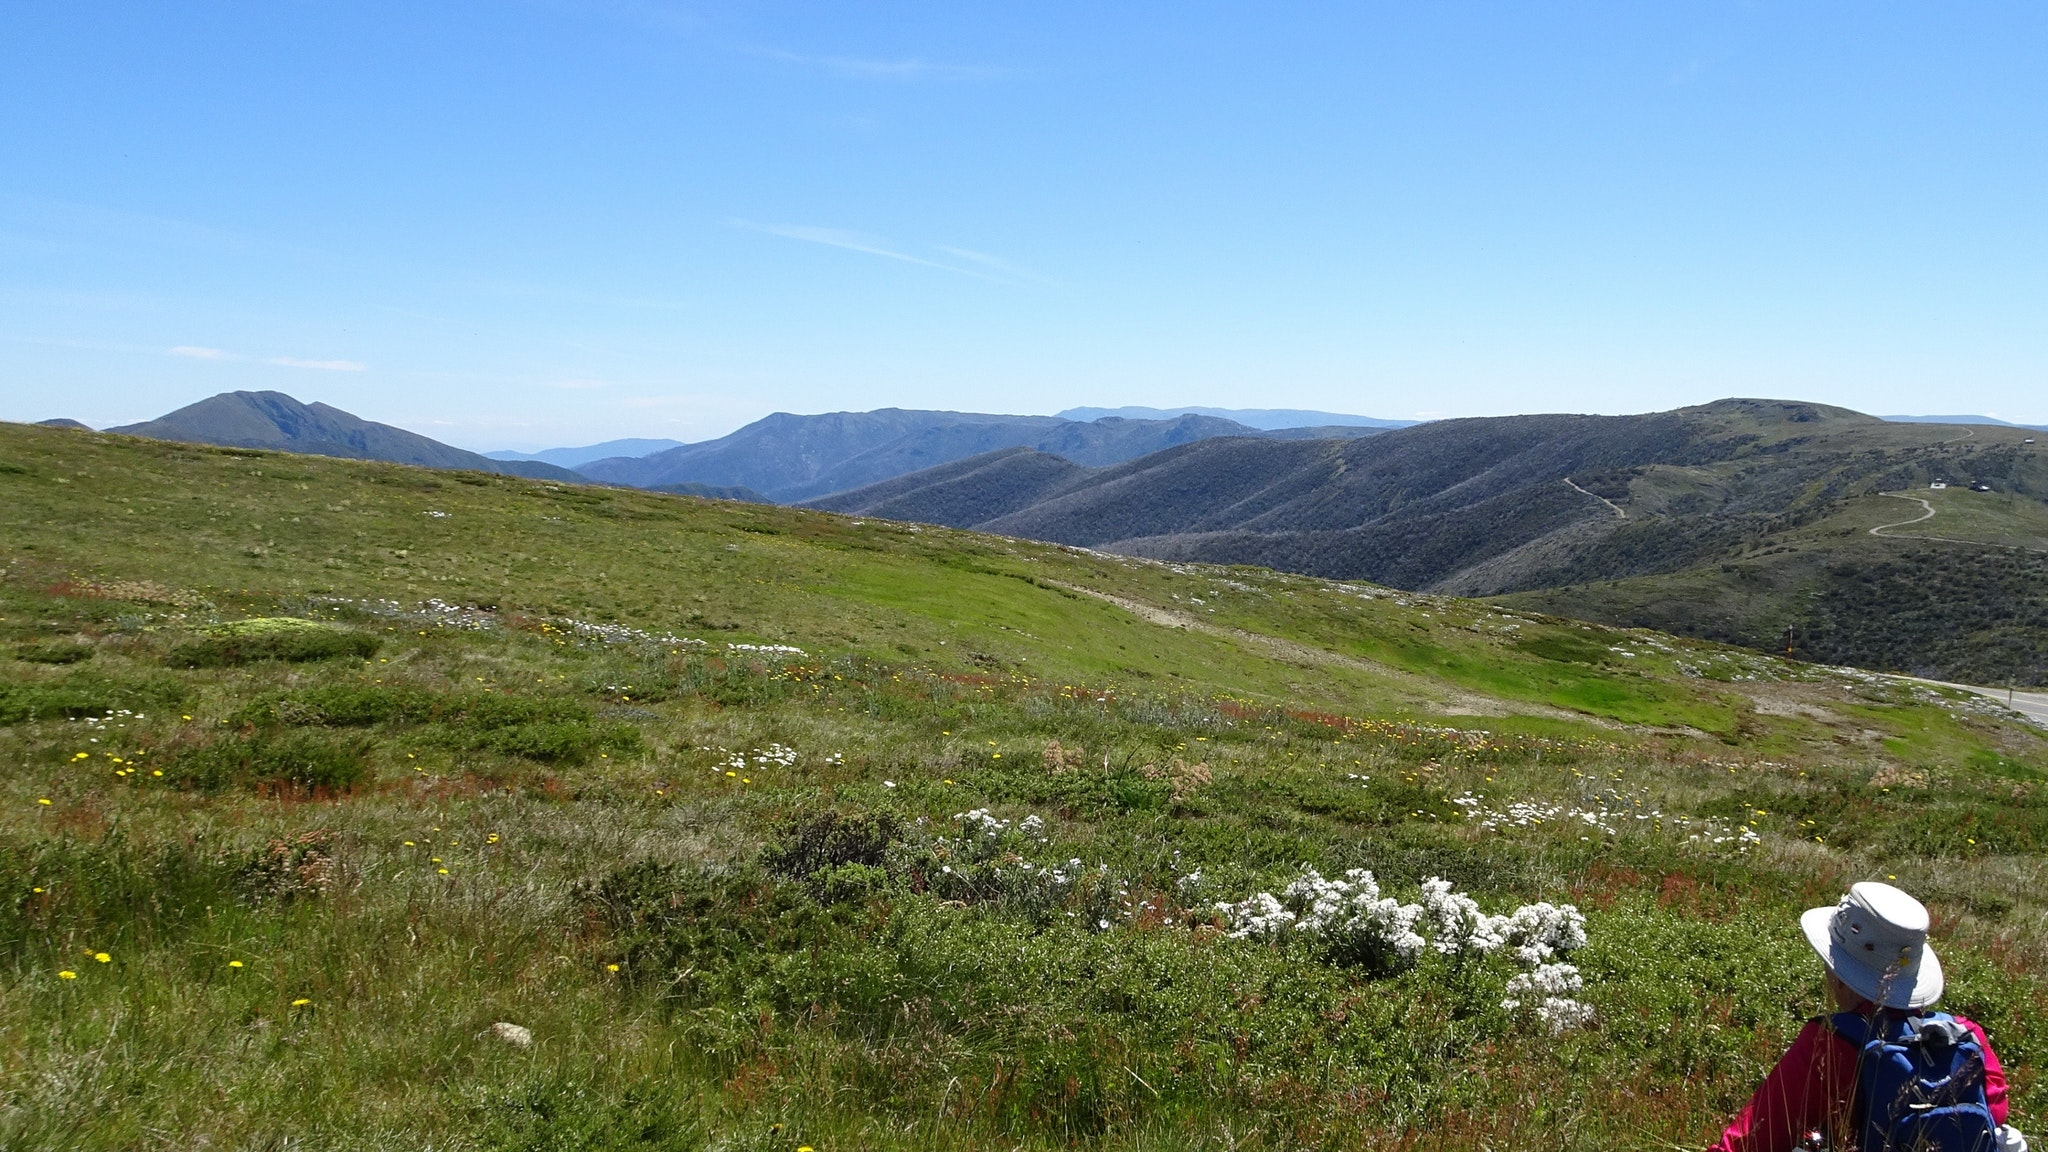 Enjoying mountain views and wildlflowers on an easy guided walk in the Alpine National Park